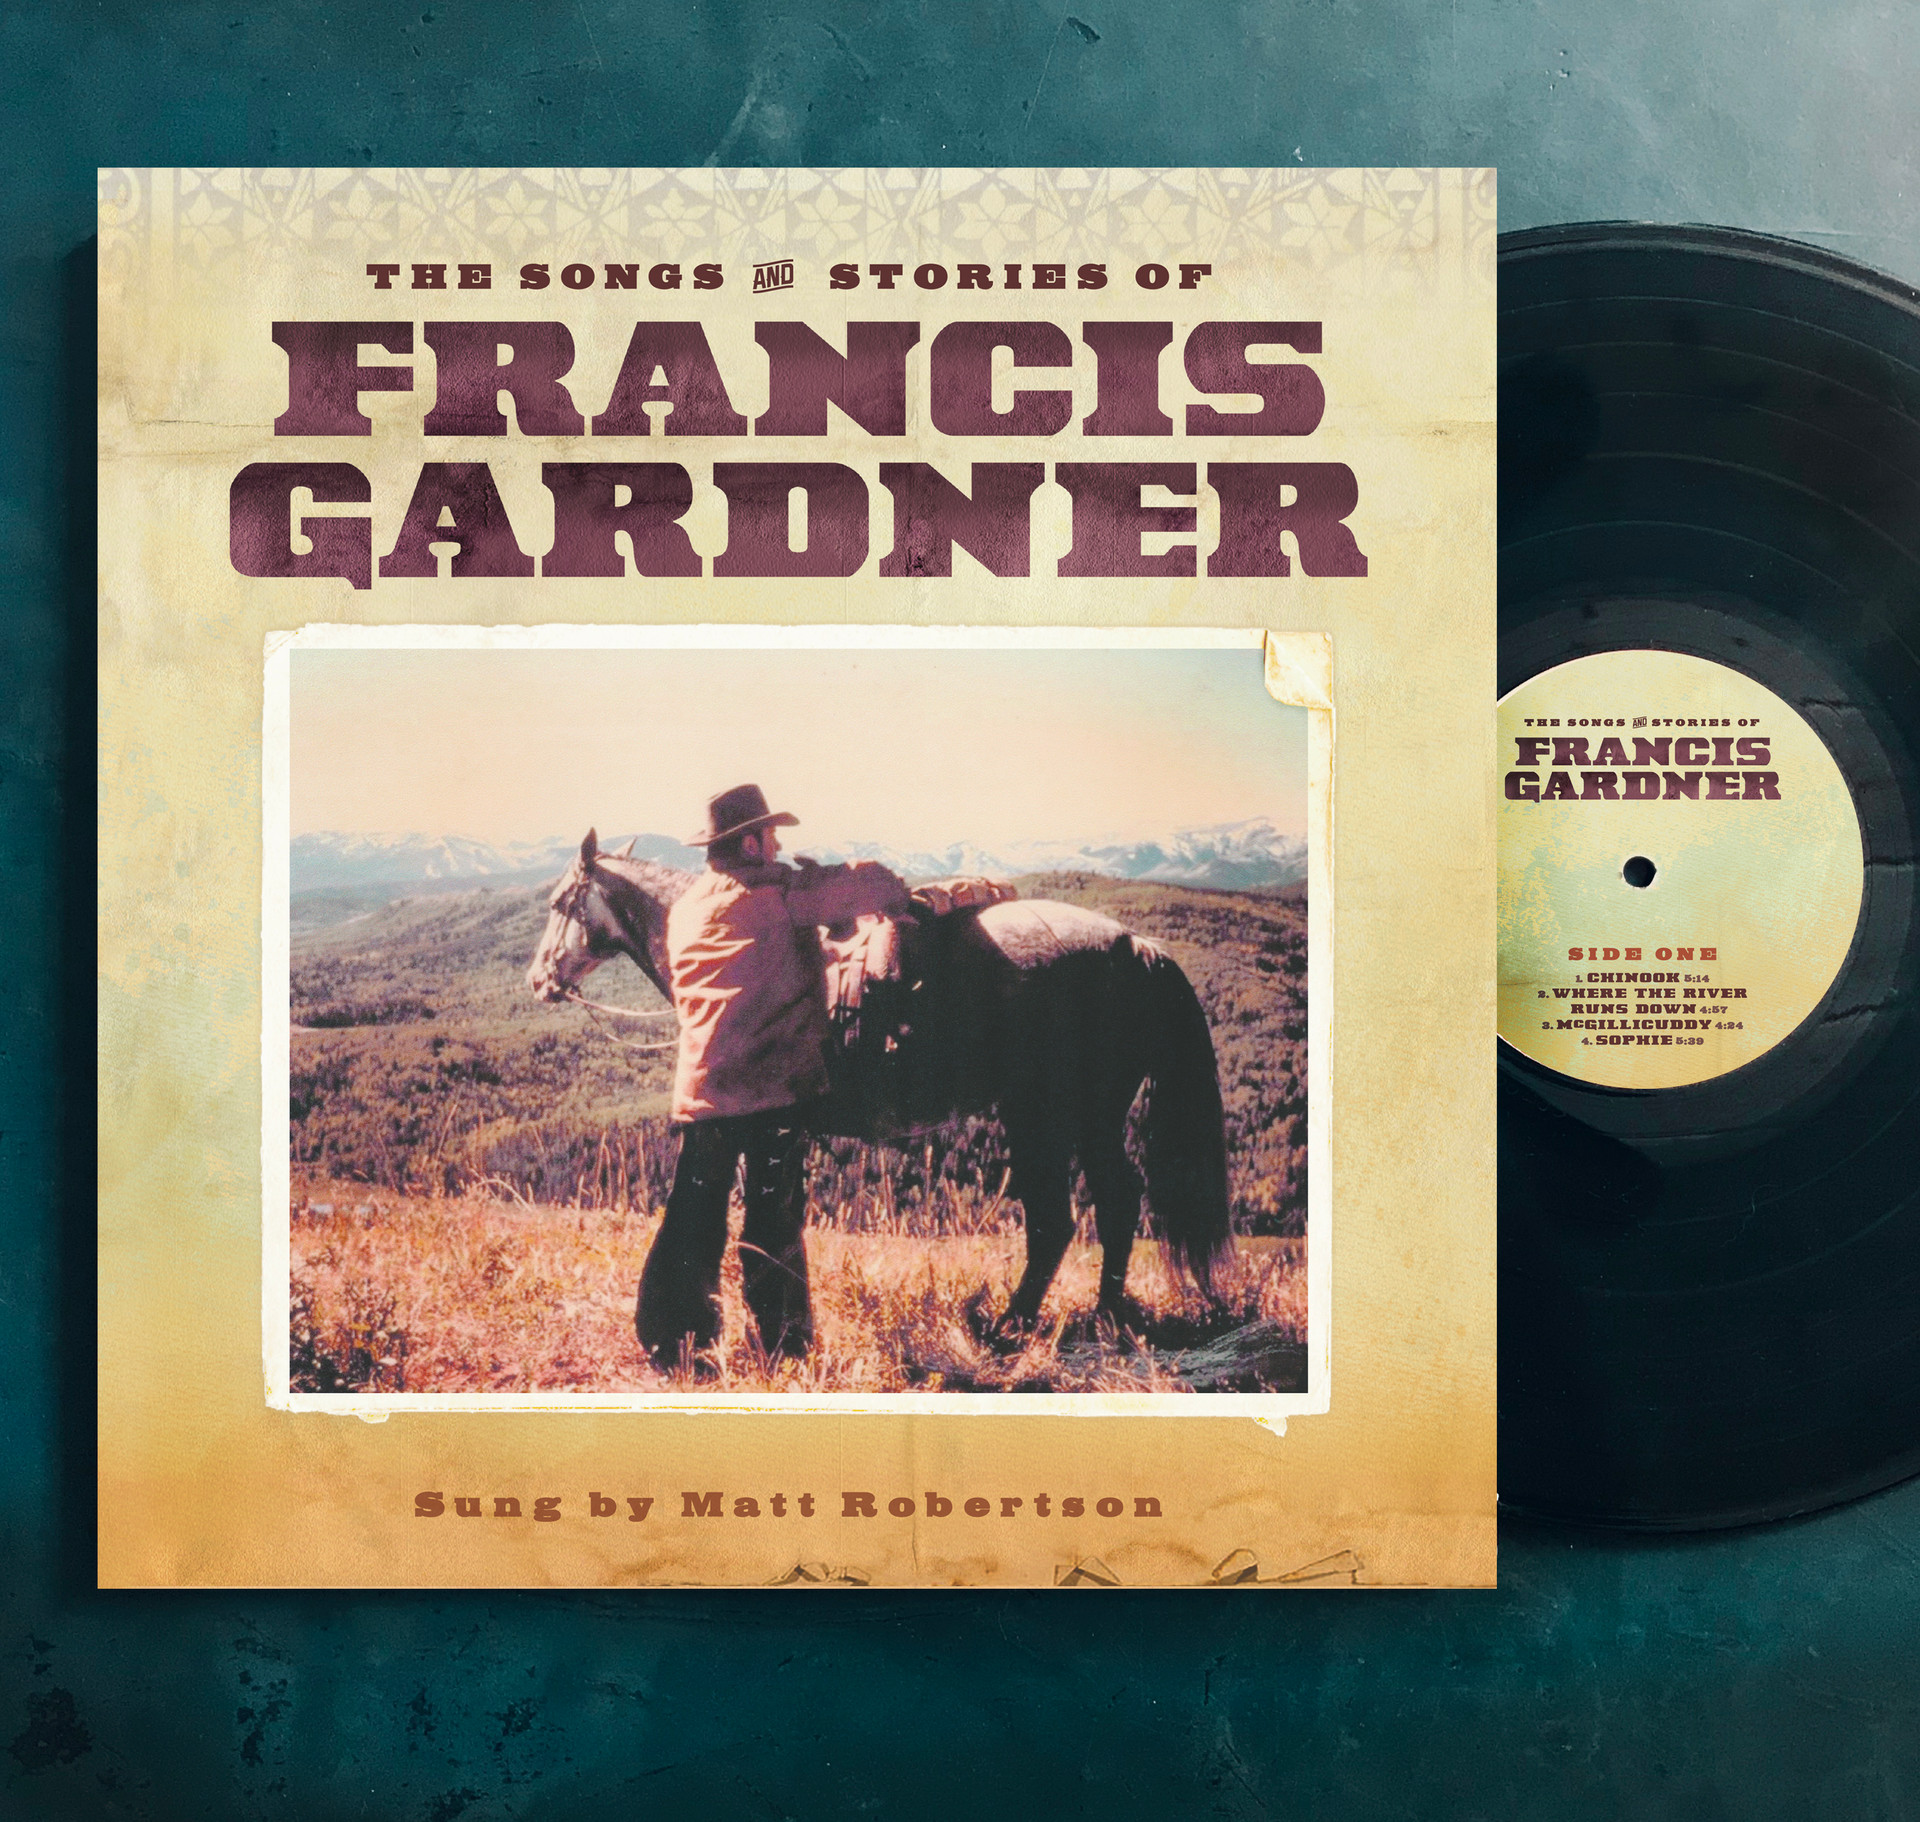 The Songs and Stories of Francis Gardner